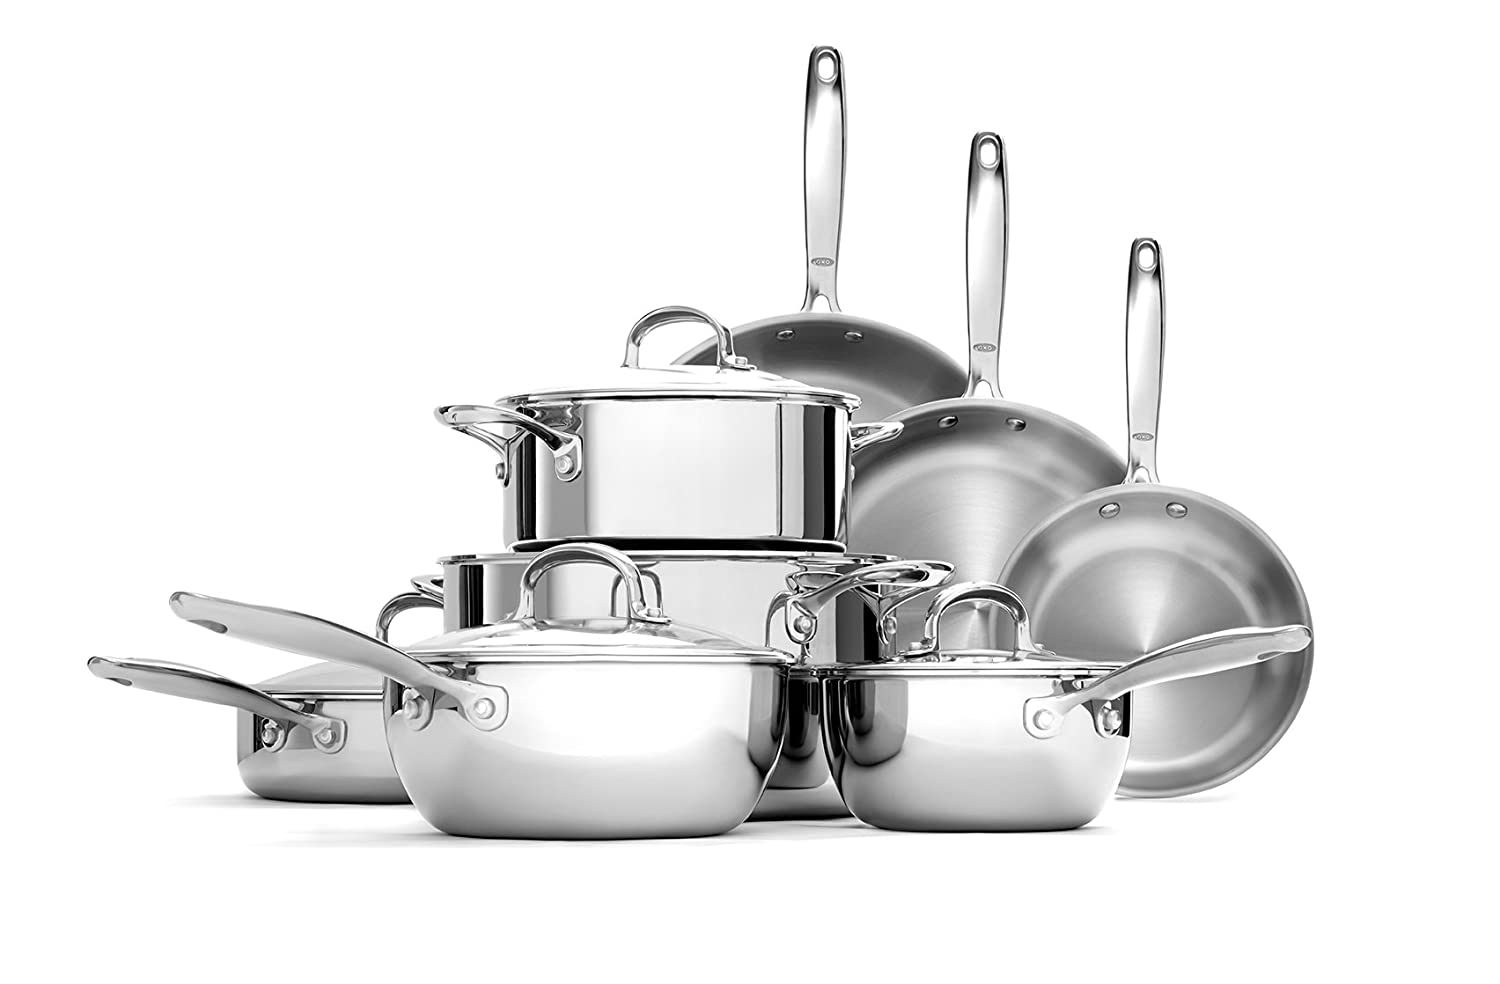 The Best Stainless Steel Cookware Set Reviews 1